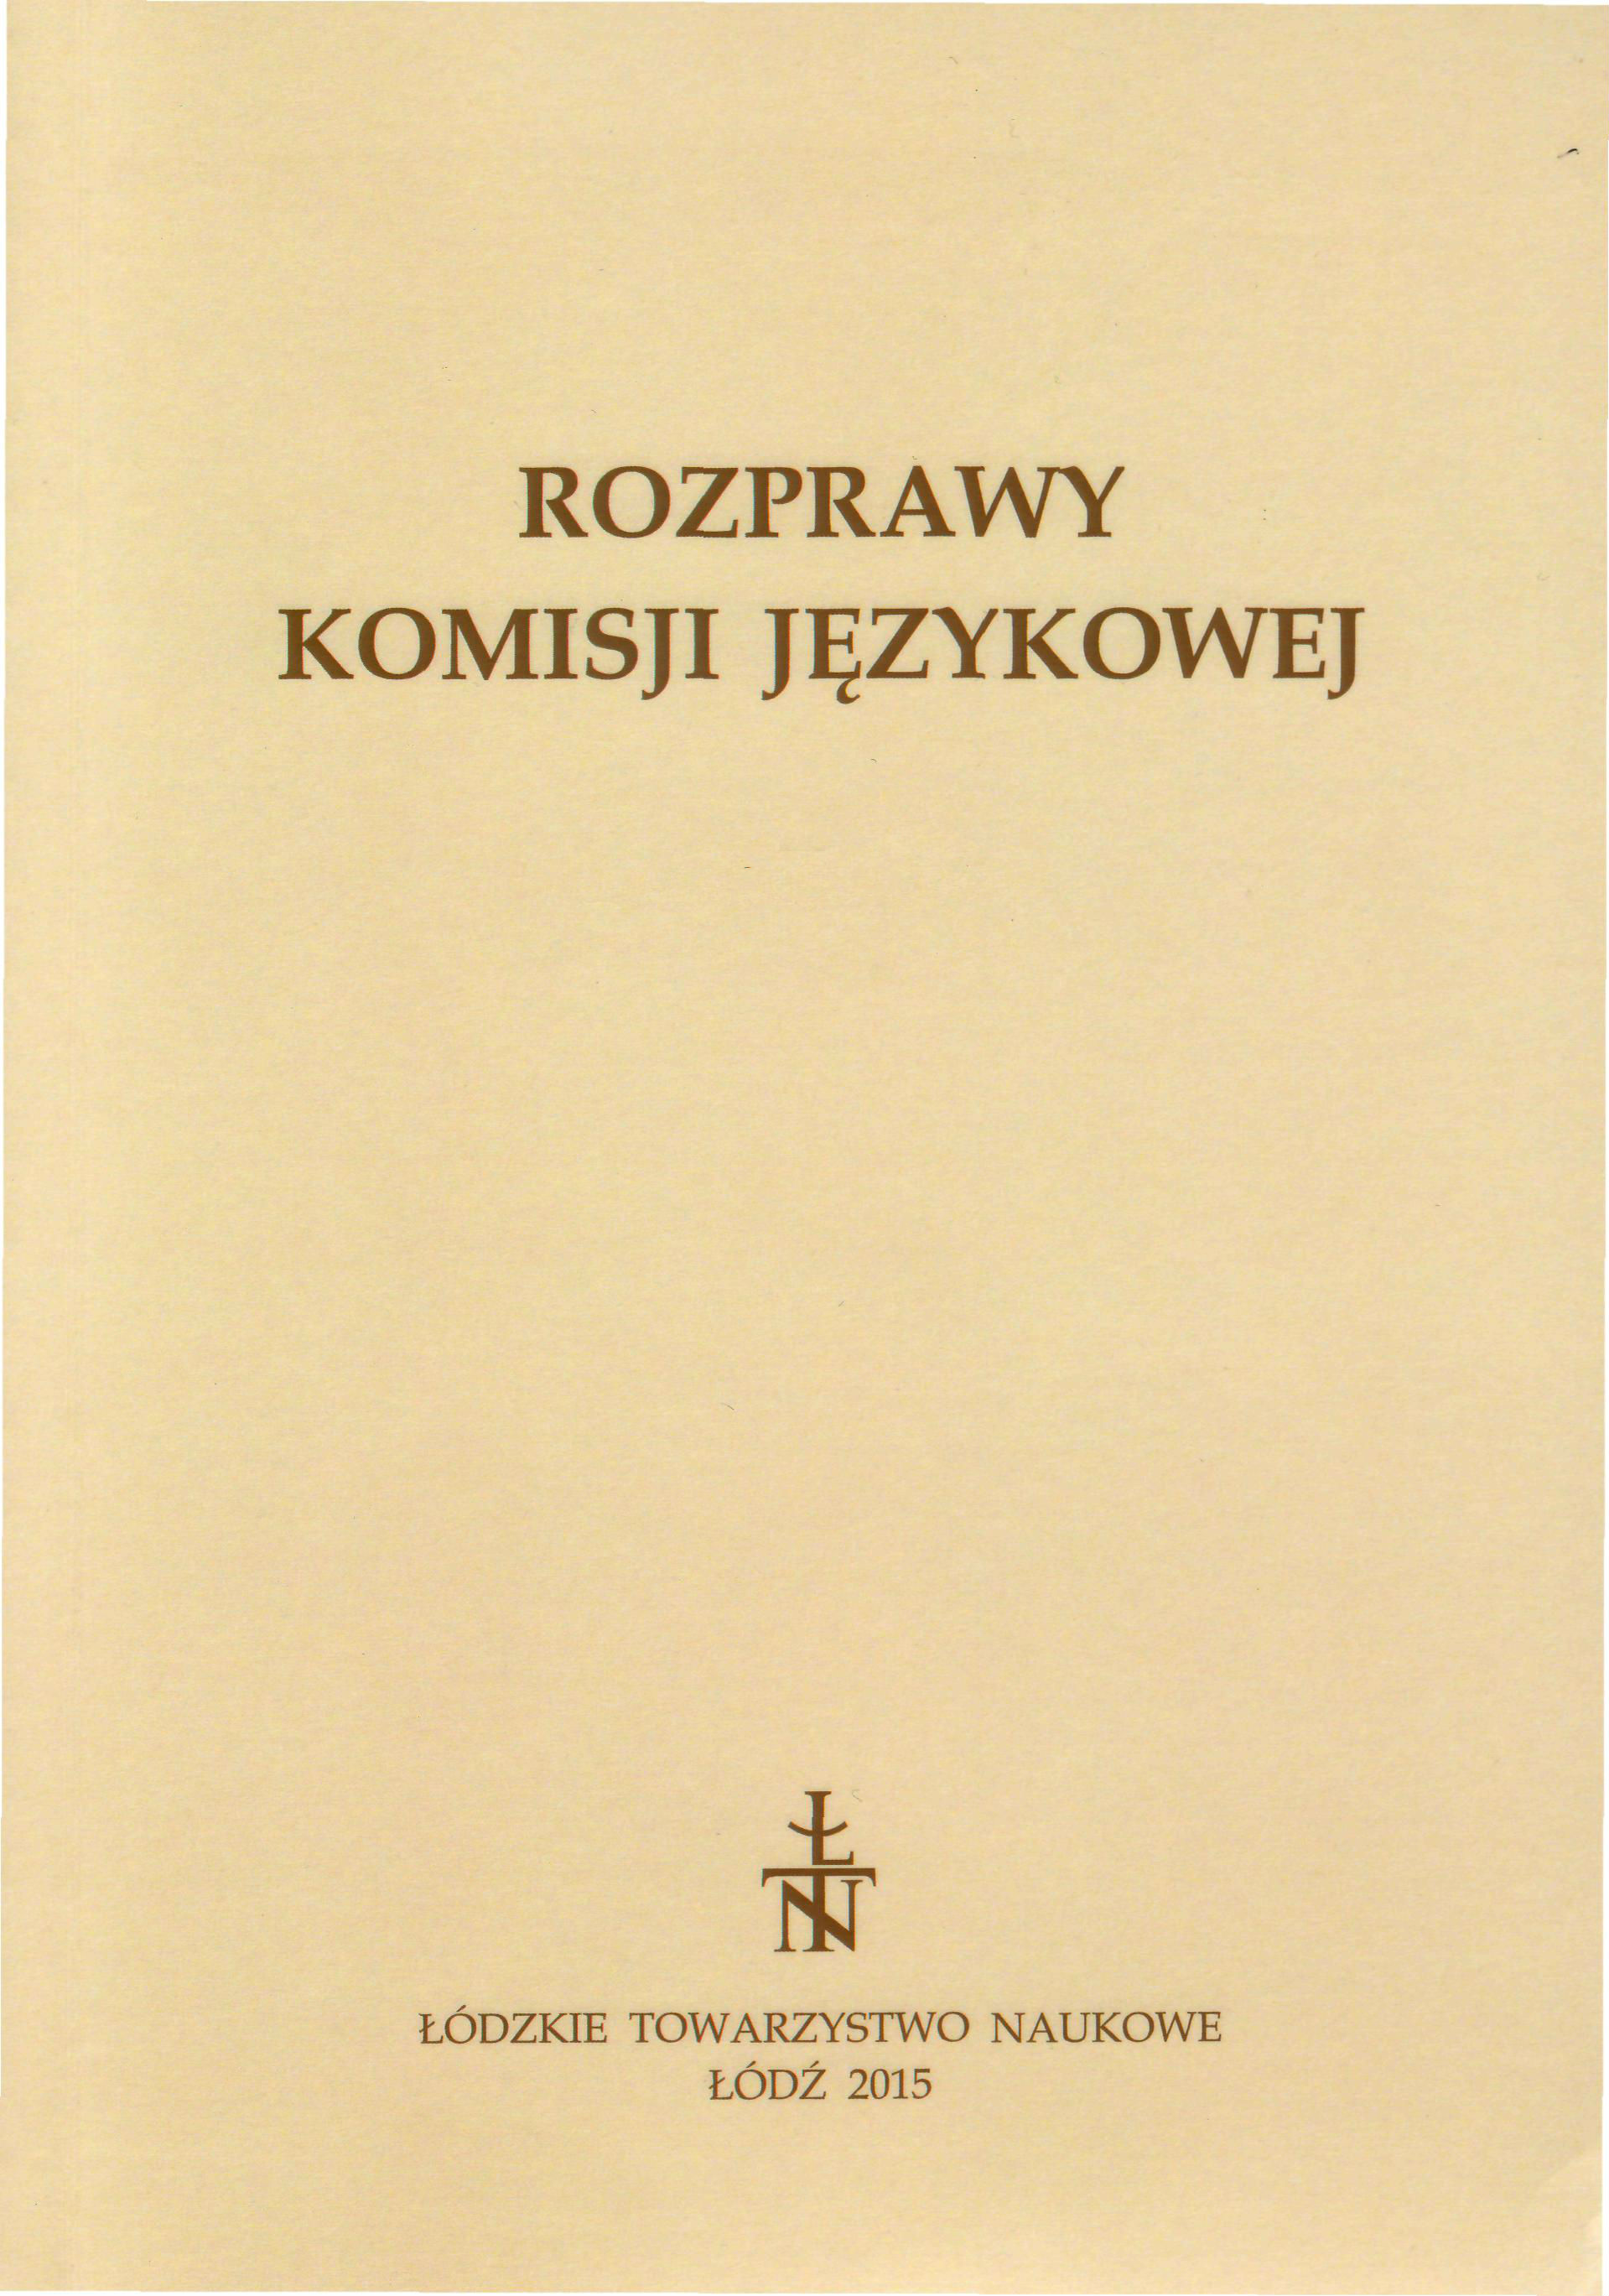 Plans for researches on microtoponyms in Poland. Statement Cover Image